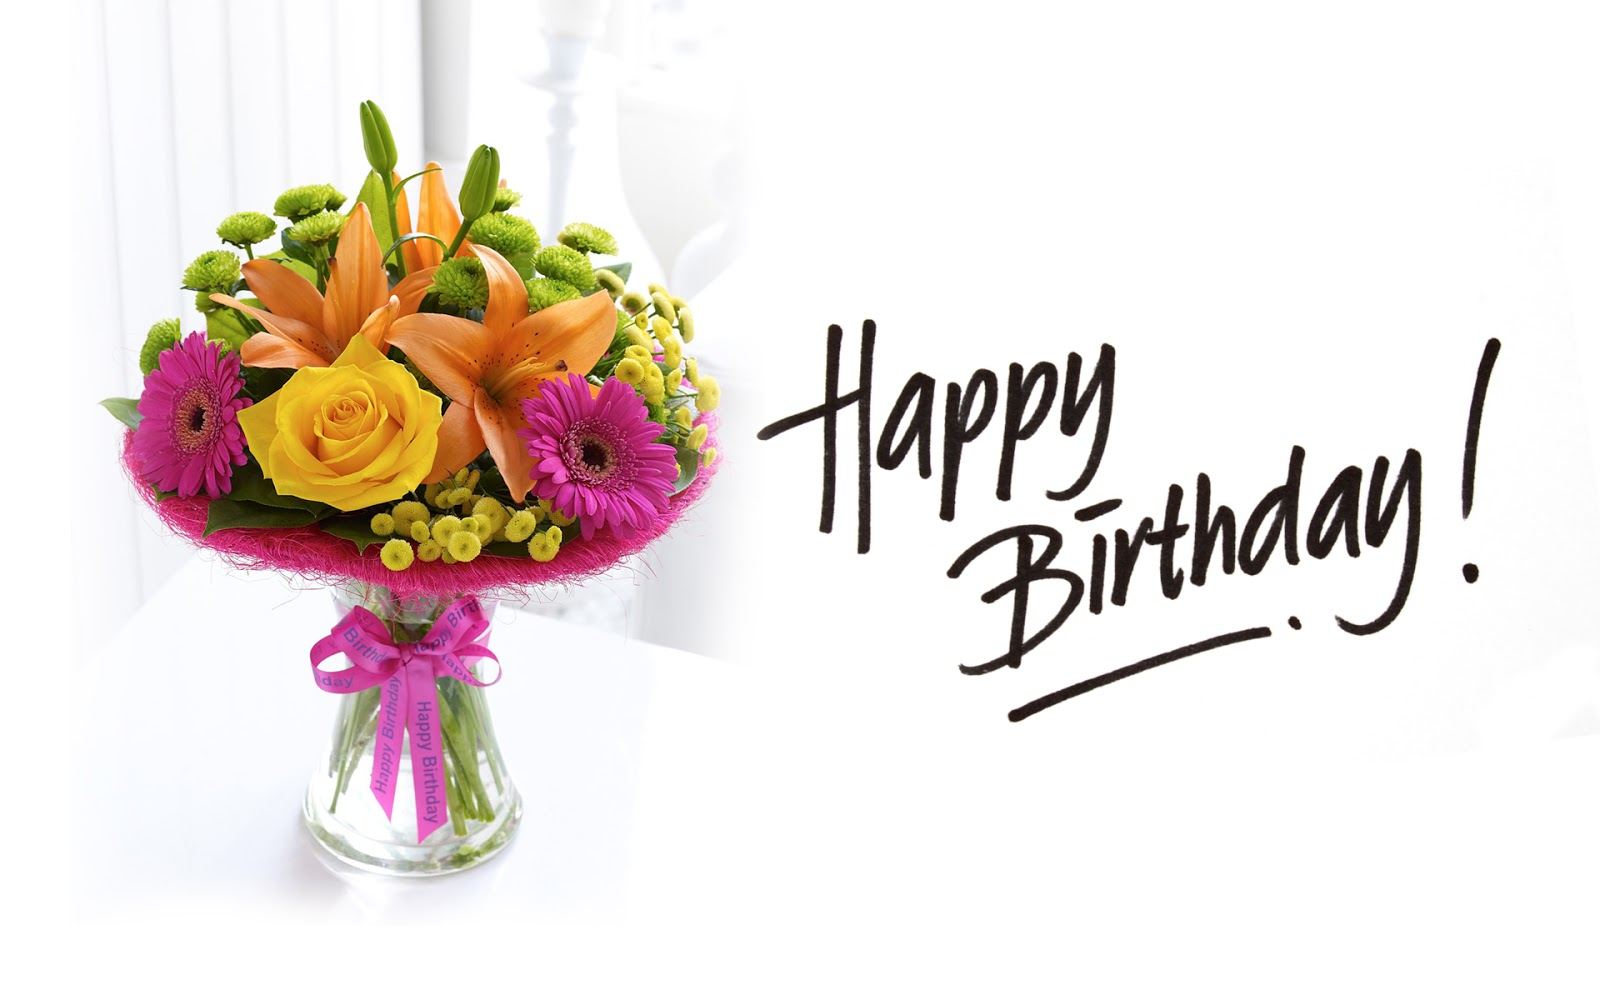 birthday wishes wallpaper hd ; beautiful-happy-birthday-bouquet-of-flowers-HD-wallpaper-image